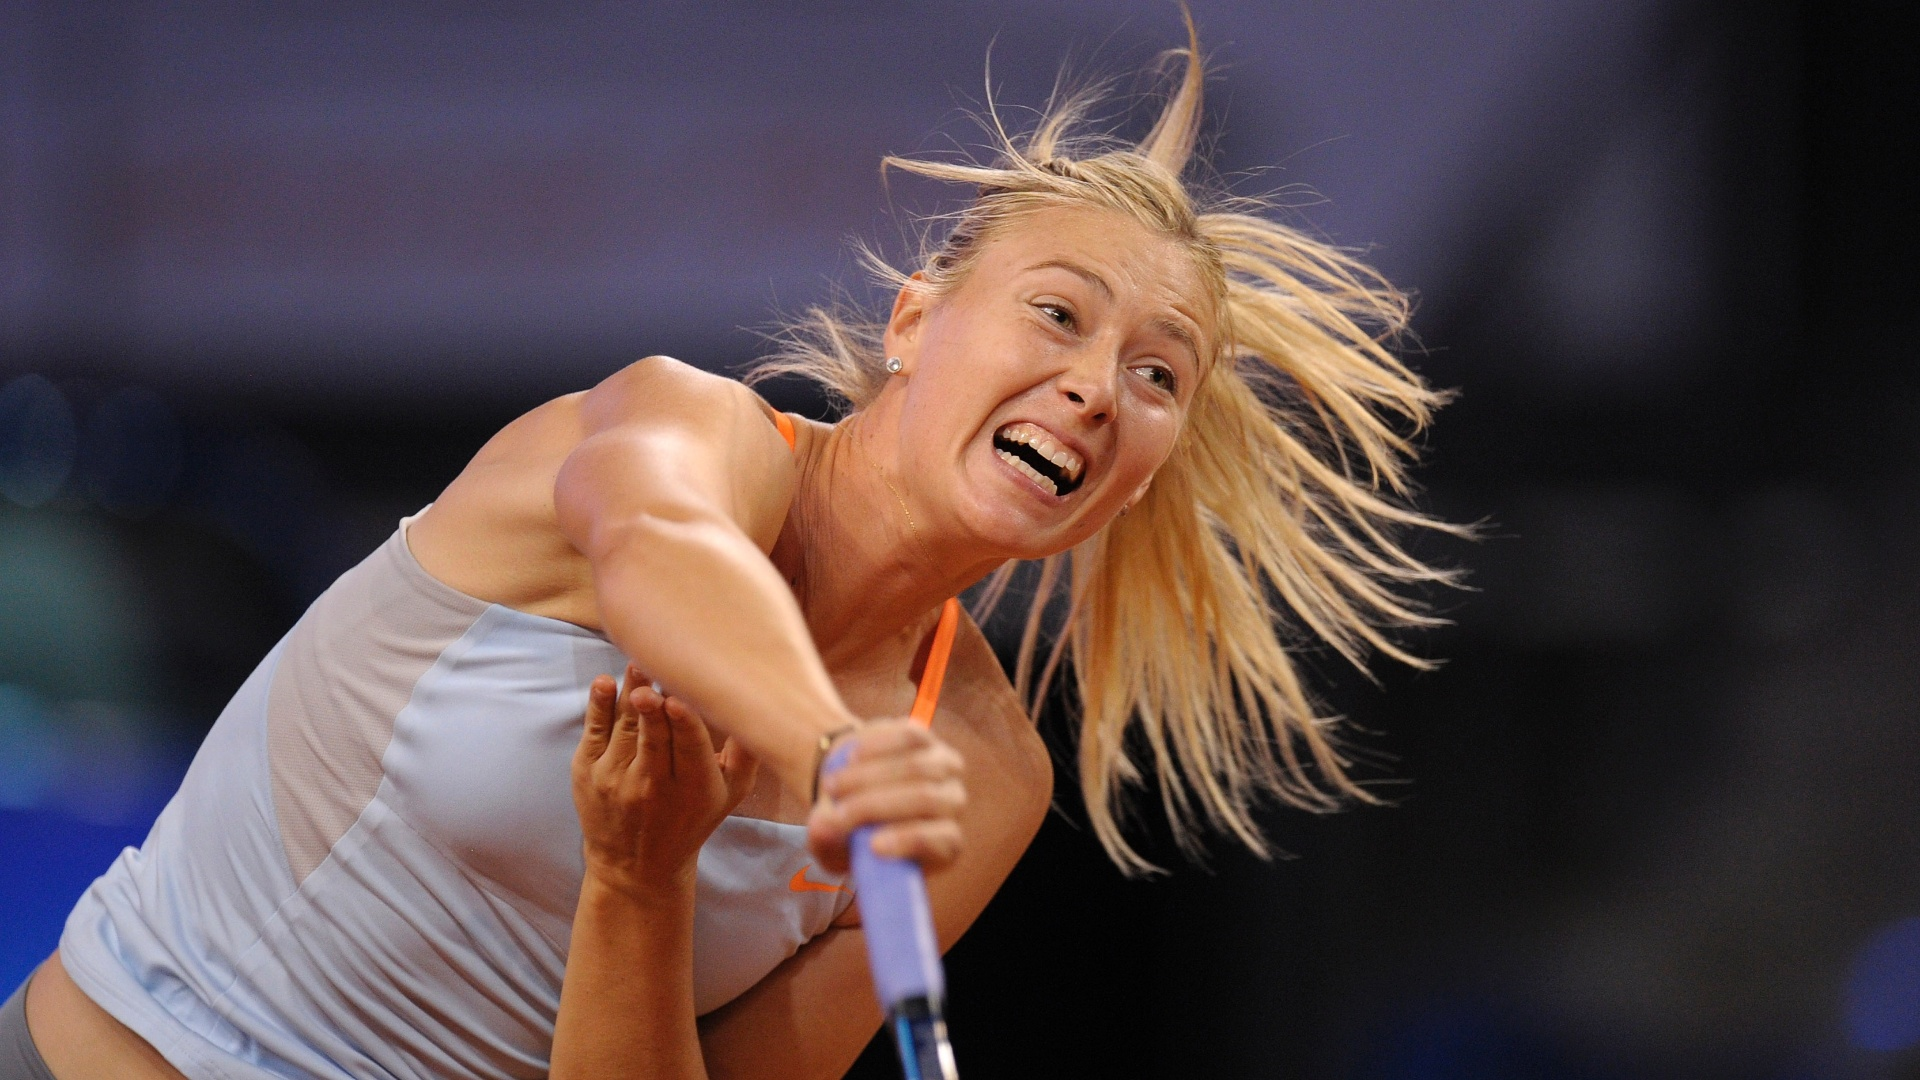 27.abr.2013 - A russa Maria Sharapova rebate bola durante a partida contra Angelique Kerber, em Stuttgart (ALE)